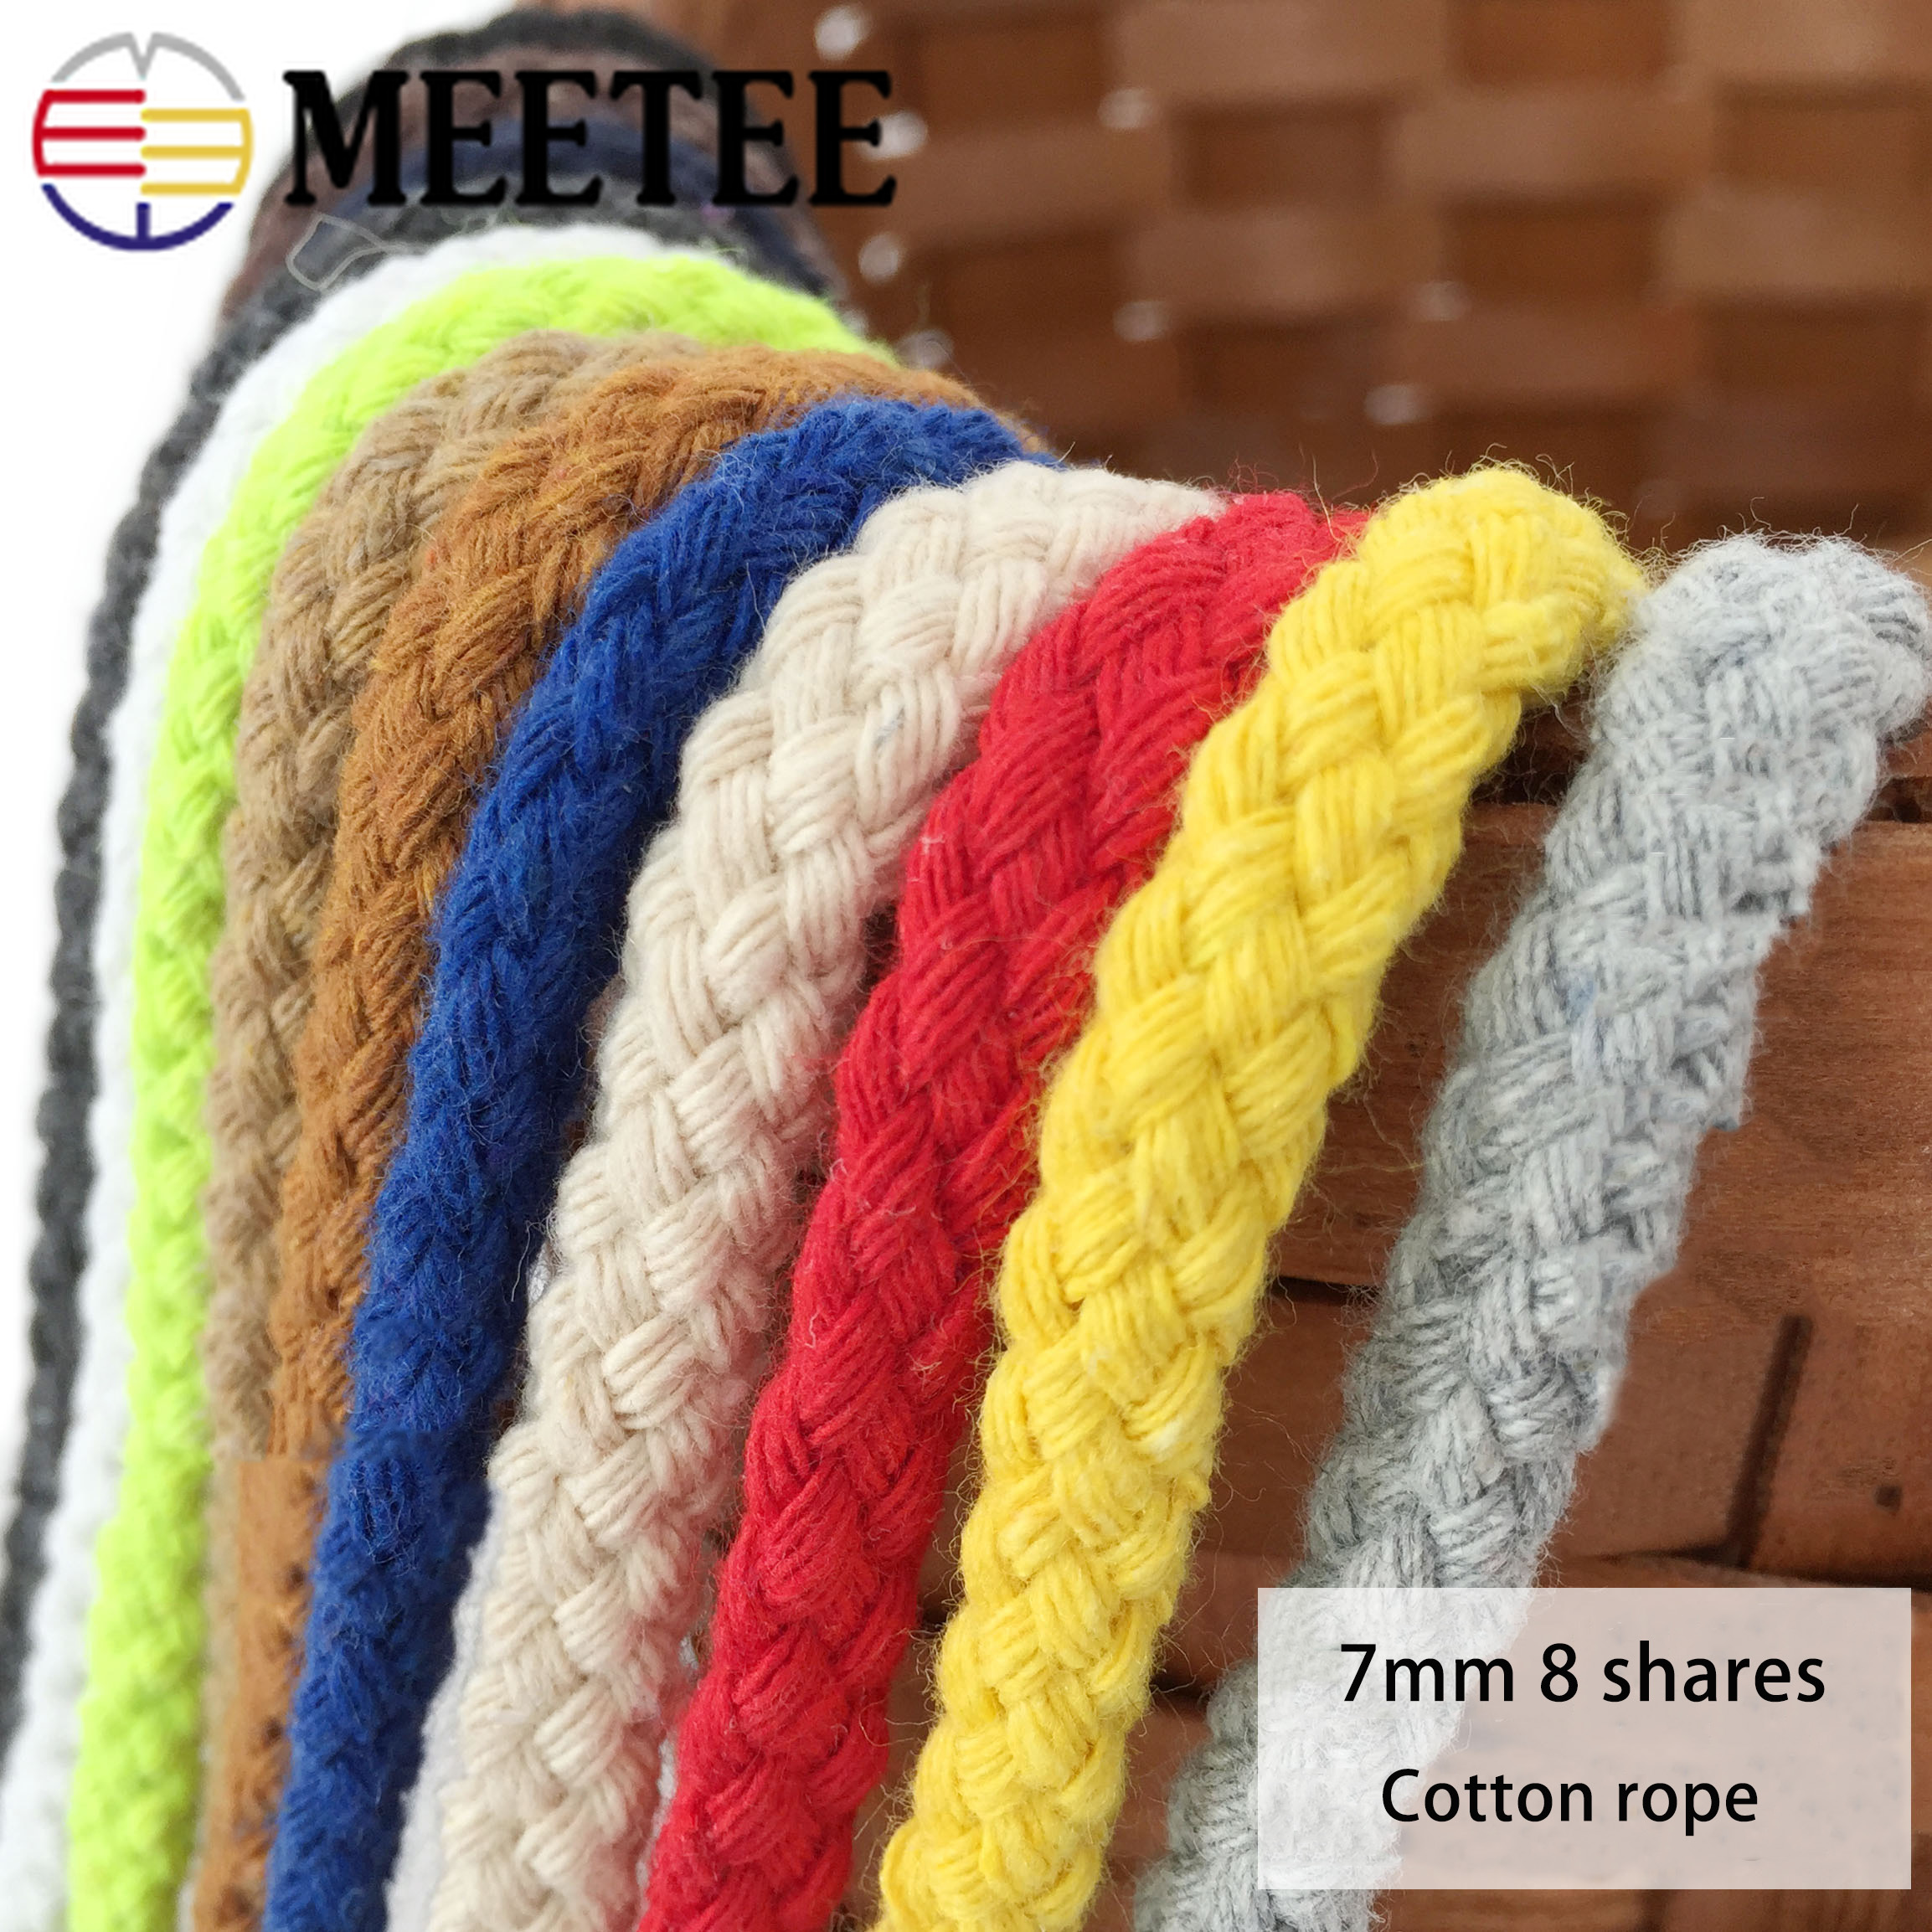 20Meters 7mm 8 shares Round 100% Cotton Cord Decorative Rope Twisted Braided Drawstring Ropes DIY Home Textile Craft